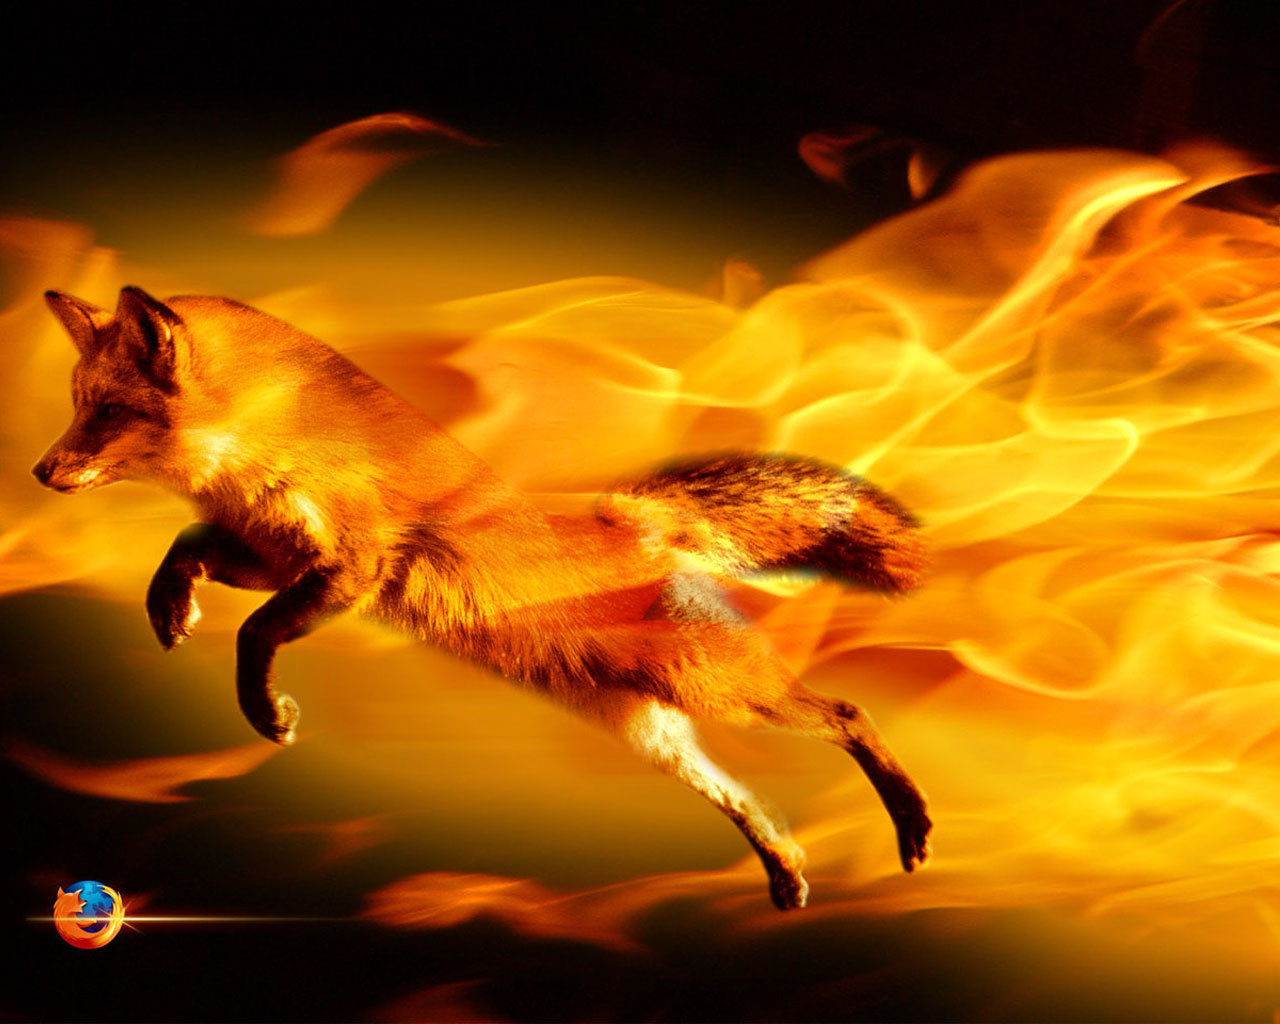 hd wallpapers desktop fire - photo #29